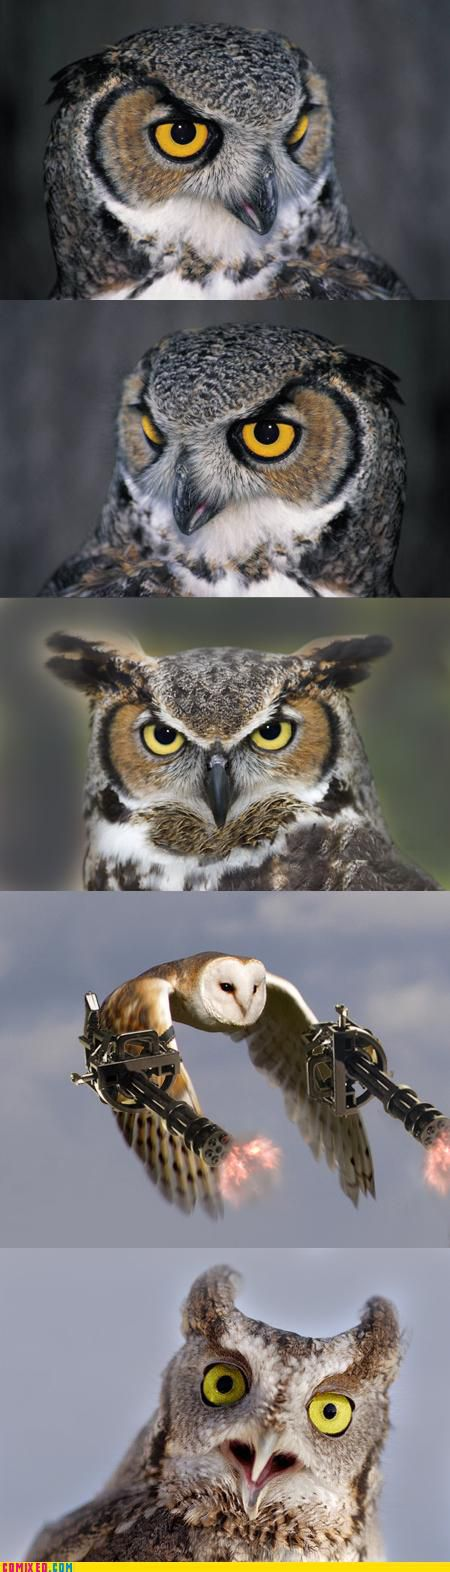 Funny Commixed Pictures. Part 6 (36 pics)